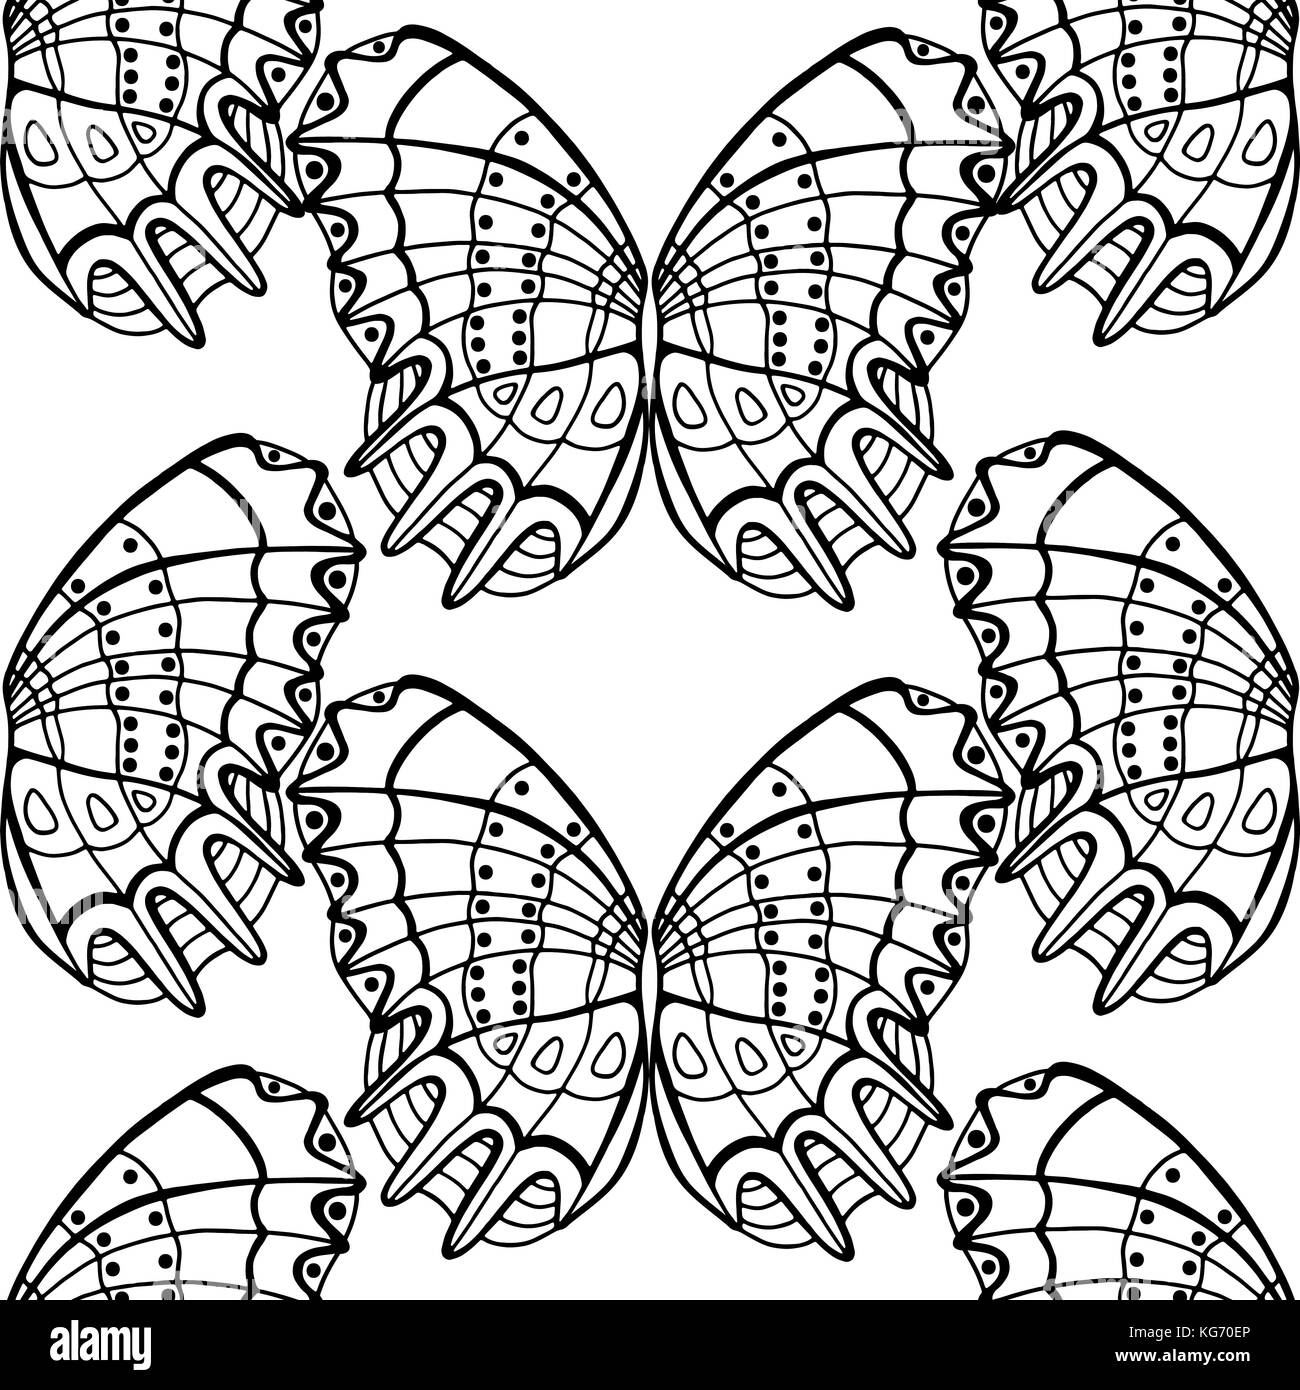 butterfly nature animals square stock photos u0026 butterfly nature